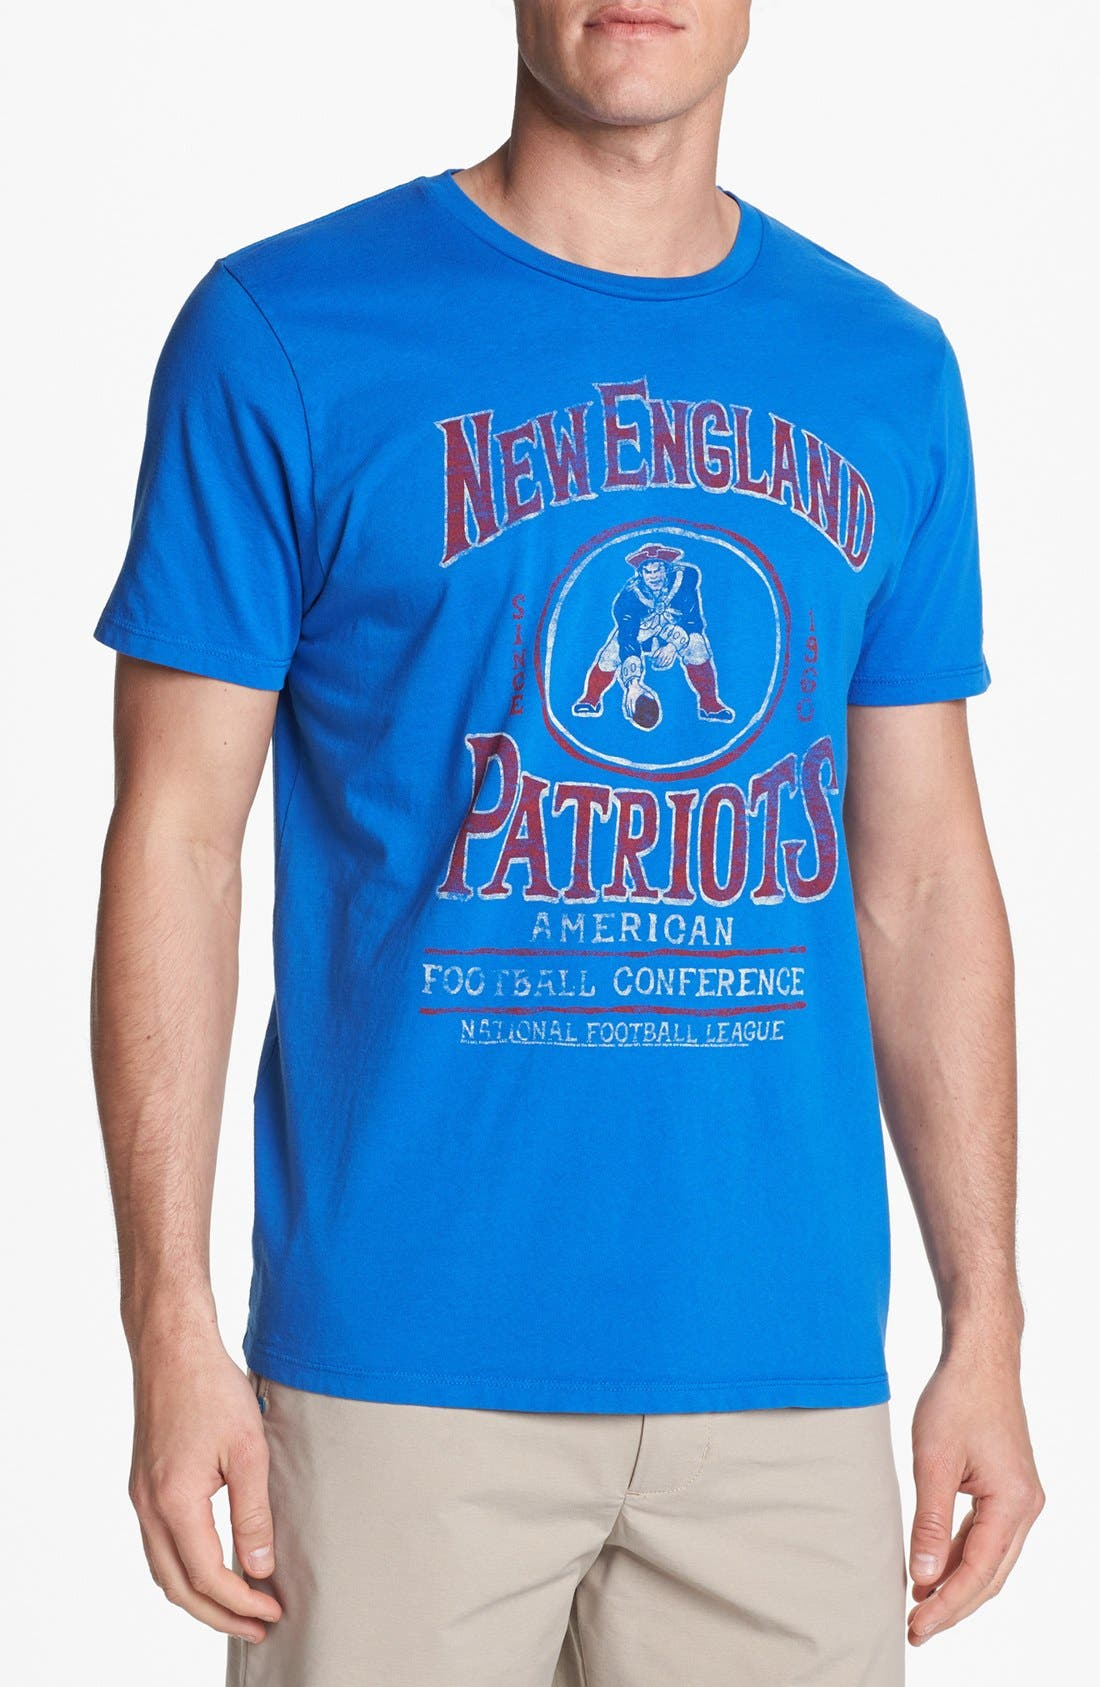 Alternate Image 1 Selected - Junk Food 'New England Patriots - Kick Off' Graphic T-Shirt.